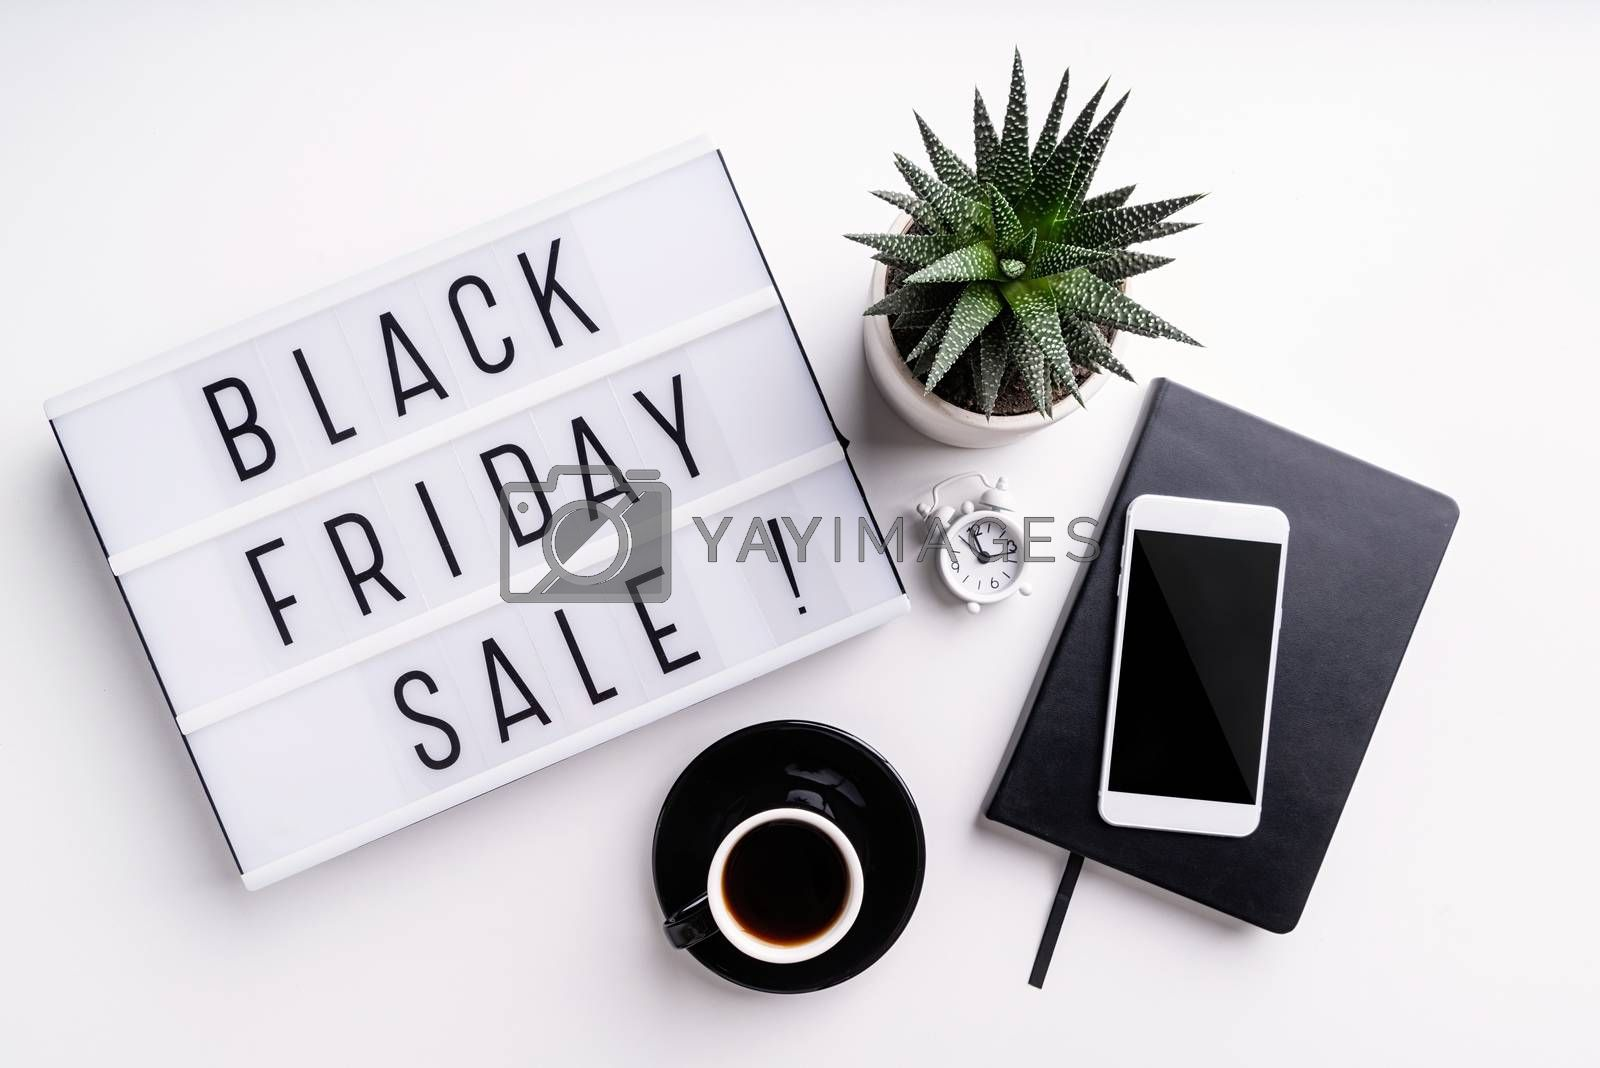 Black Friday shopping sale concept. Black Friday Sale words on lightbox with cup of coffee, mobile phone and potplant top view flat lay on white background